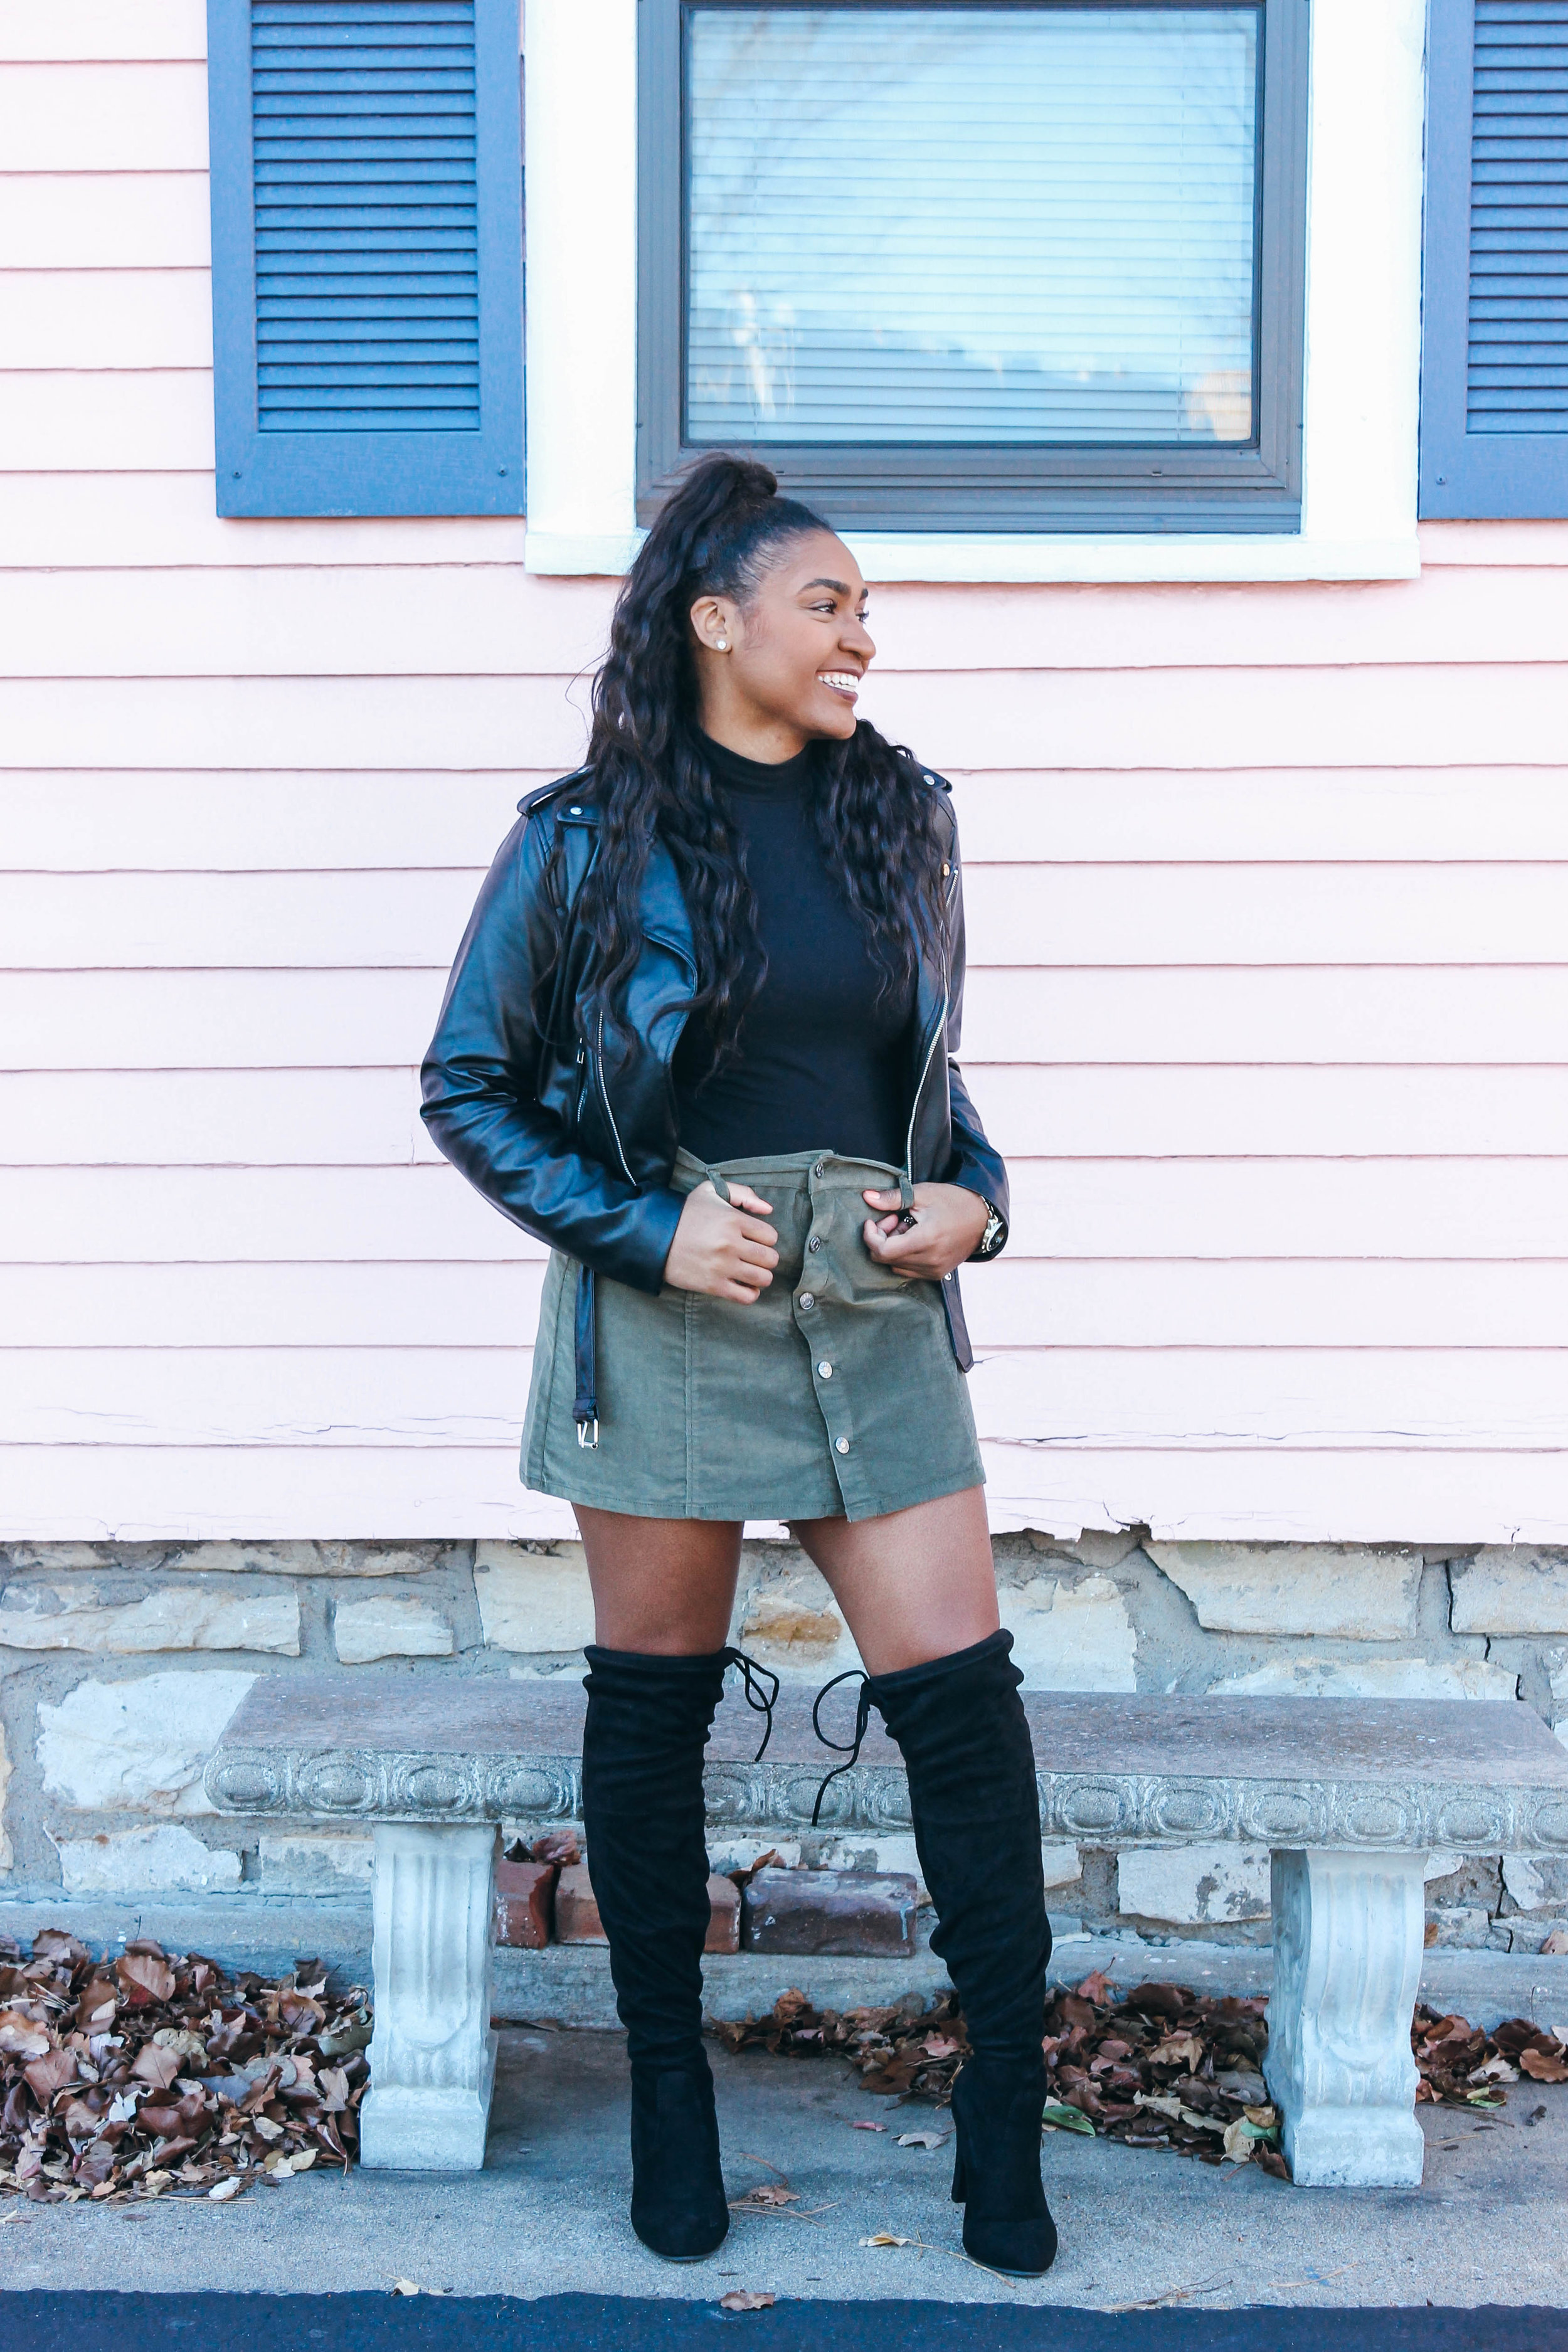 jasmine diane how to wear a mini skirt when you're over 30.jpg